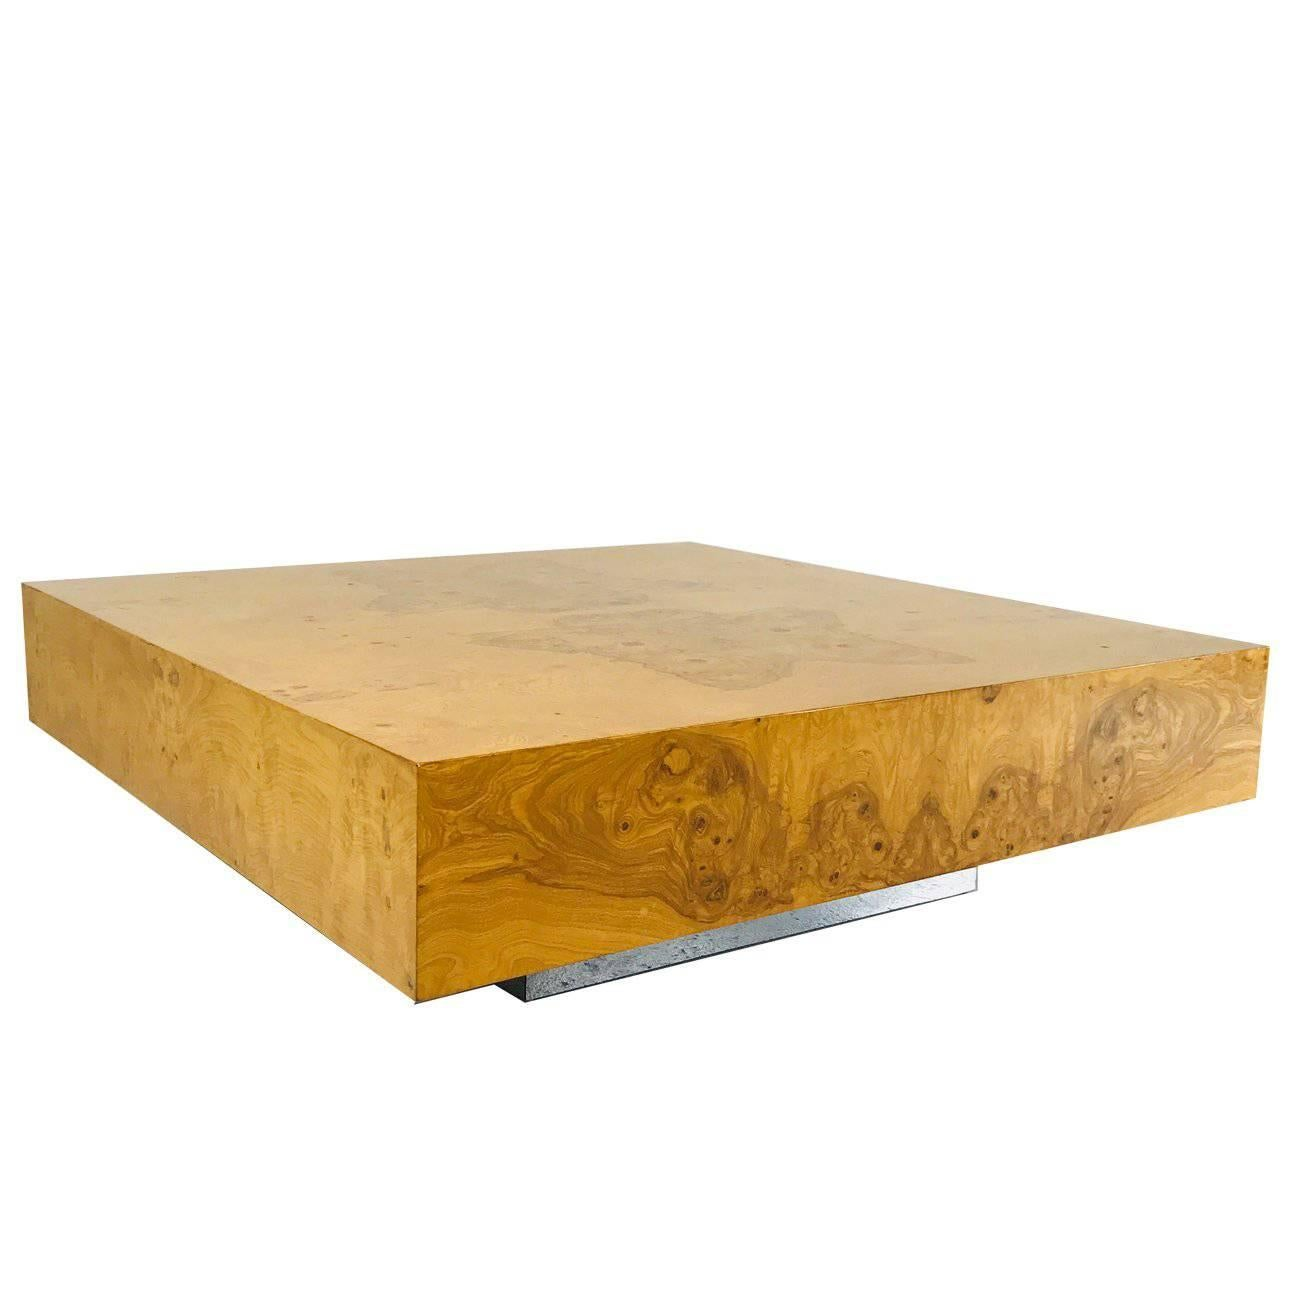 Milo Baughman Burl Wood Coffee Table with Plinth Base For Sale at